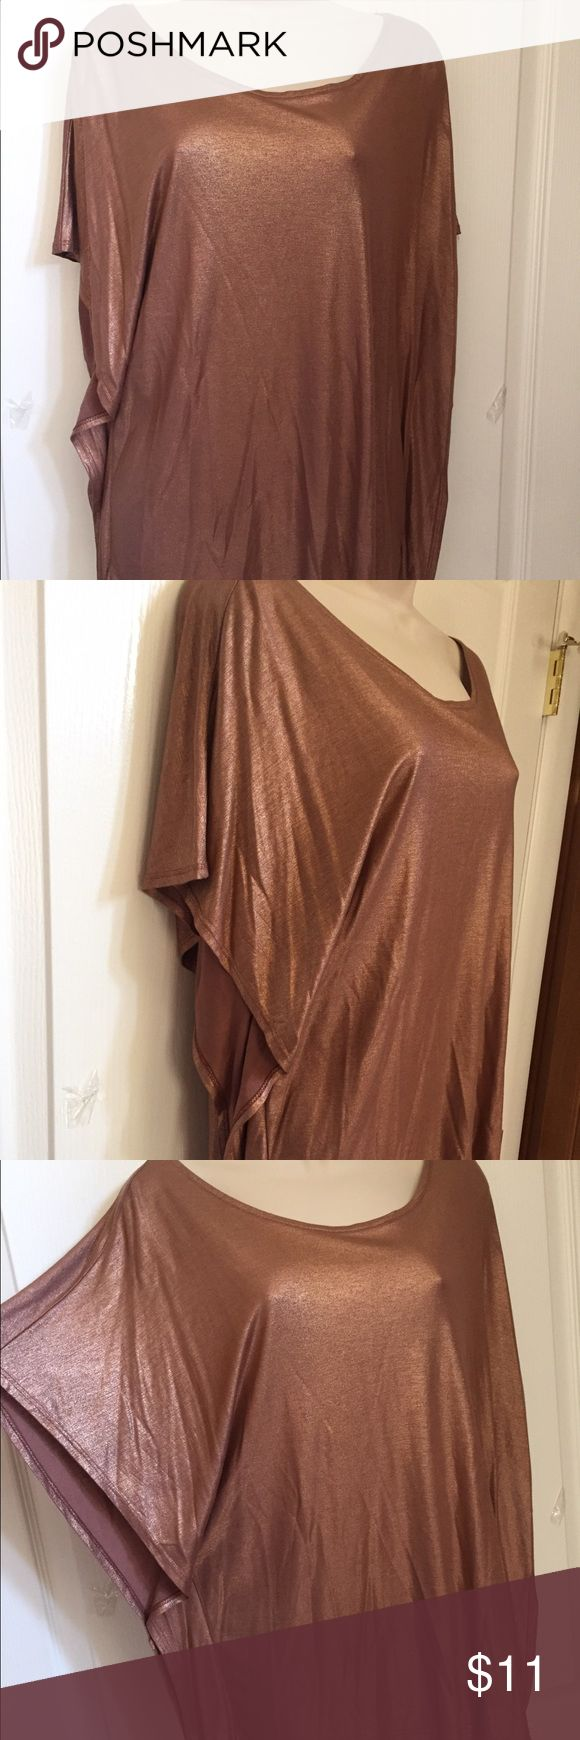 H&M Bronze Flowy Tunic Bronze dressy shirt, very comfortable, only worn a few times. Looks great with jeans and black pants. Great condition. XS but oversized, so could fit S too. H&M Tops Tunics